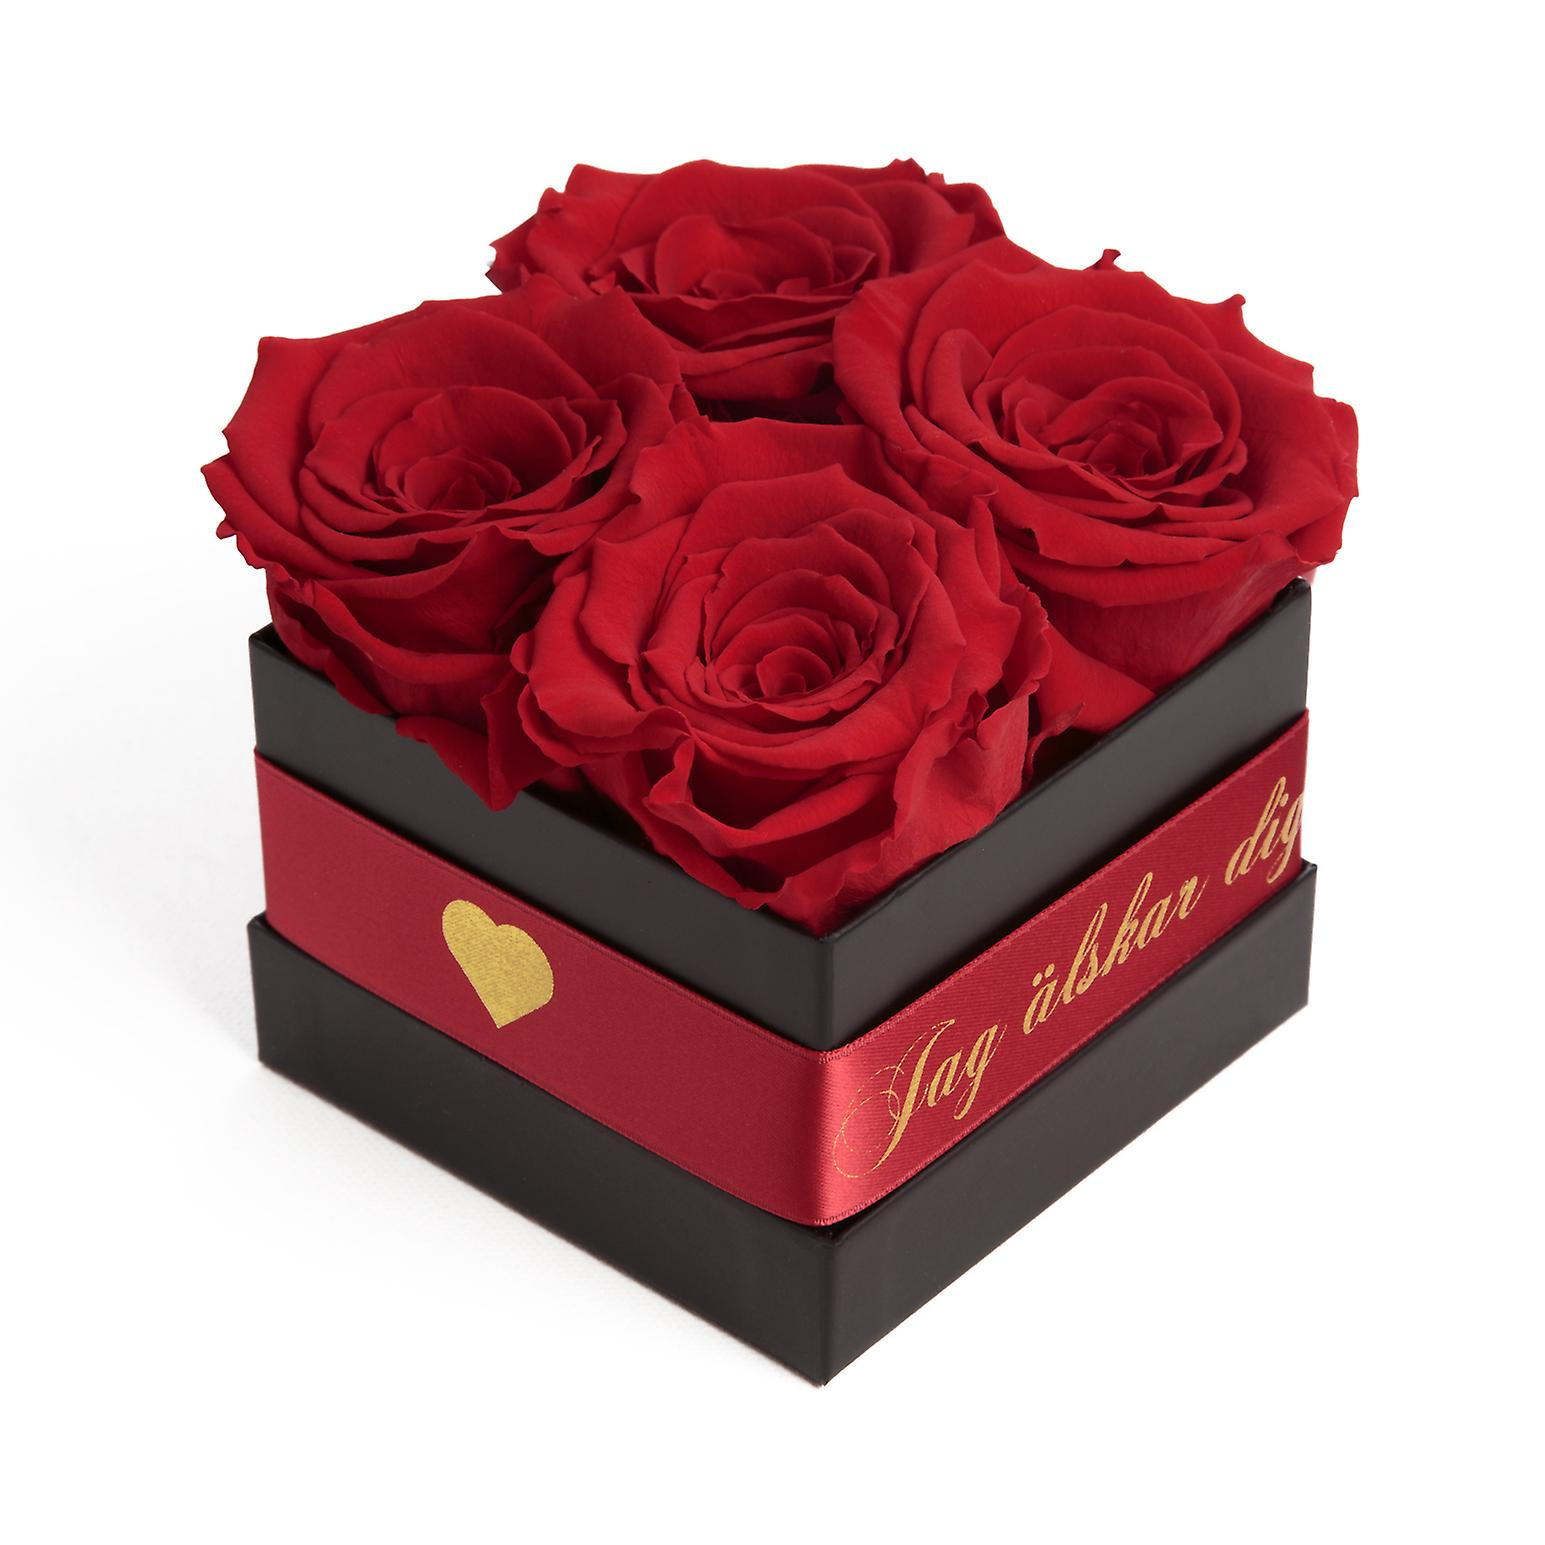 JAG älskar dig Flowerbox with 4 preserved roses red and satin band stable three years